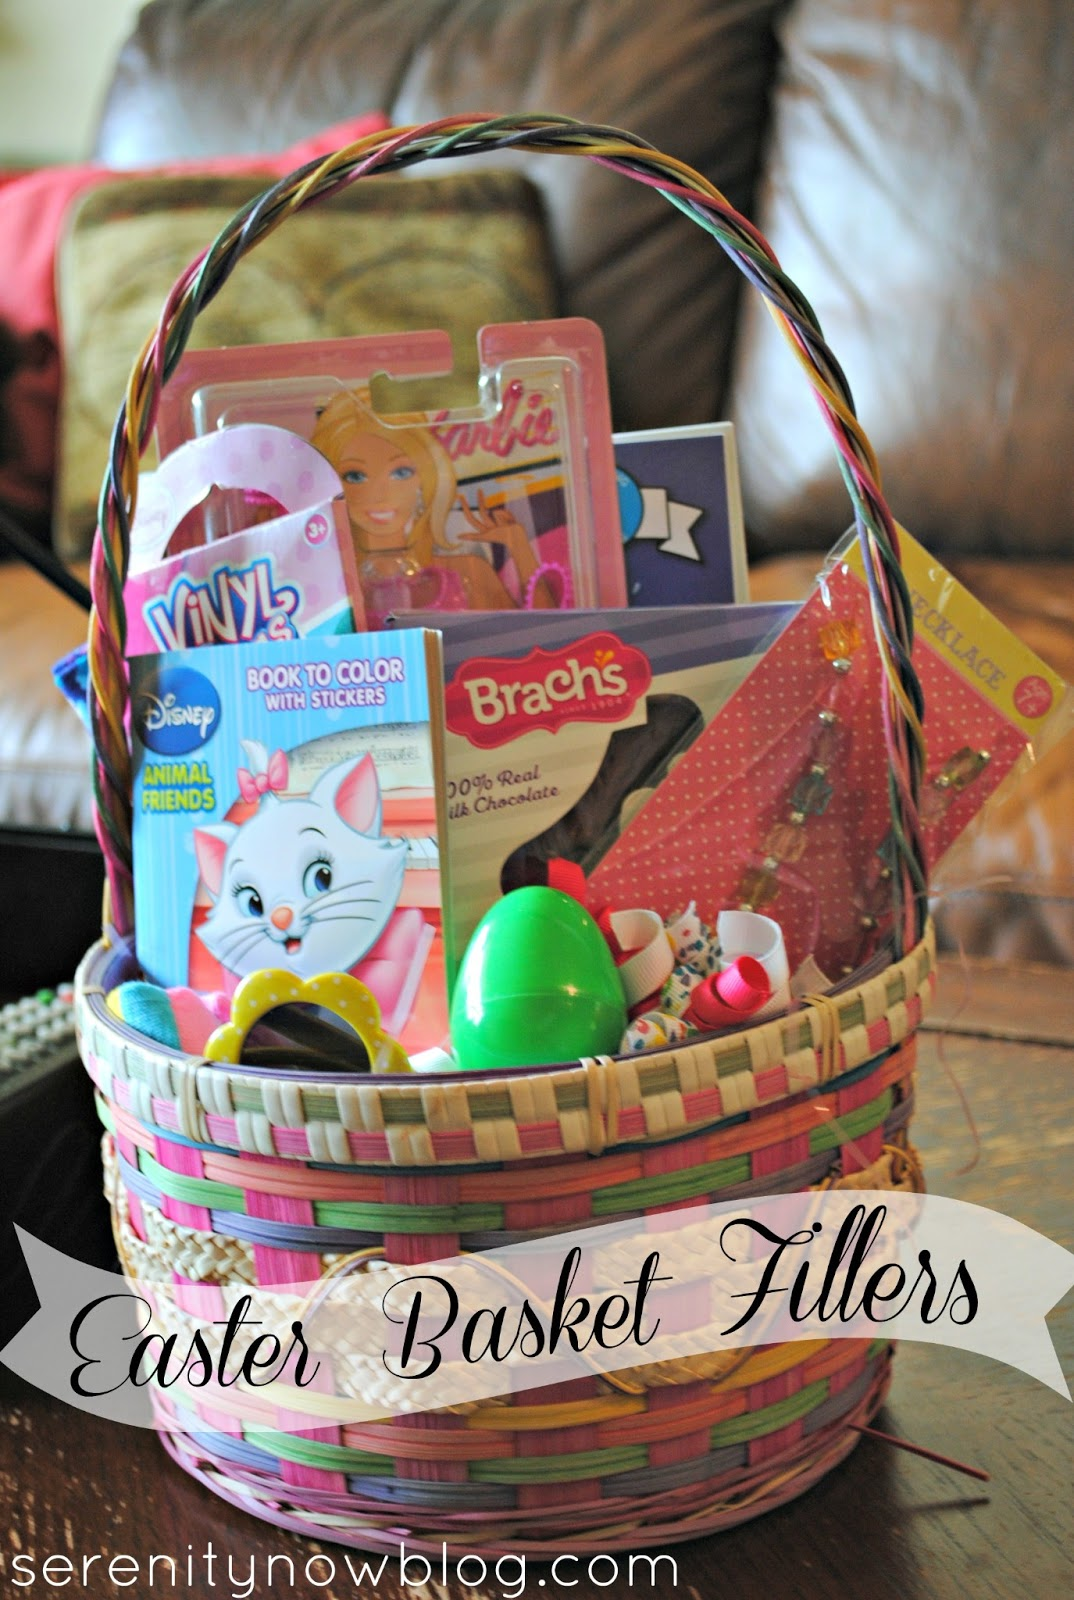 Serenity now easter basket filler ideas easter gifts for kids easter basket filler ideas from serenity now easter negle Gallery